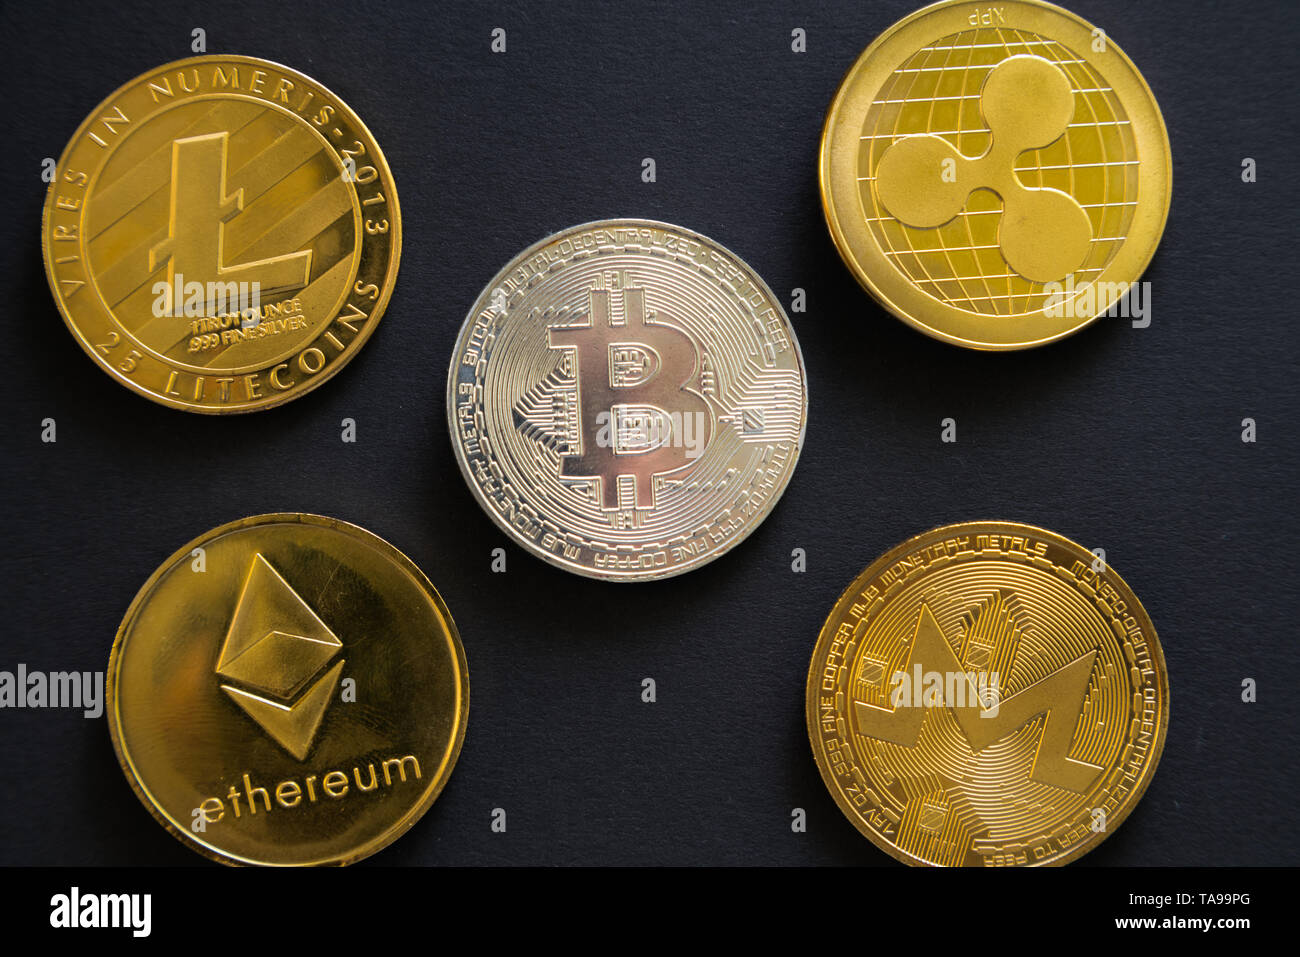 Main crypto currency coins next to each other: Bitcoin, Litecoin, Ripple, Monerd, Ethereum coin on black background. Digital currency, block chain mar - Stock Image